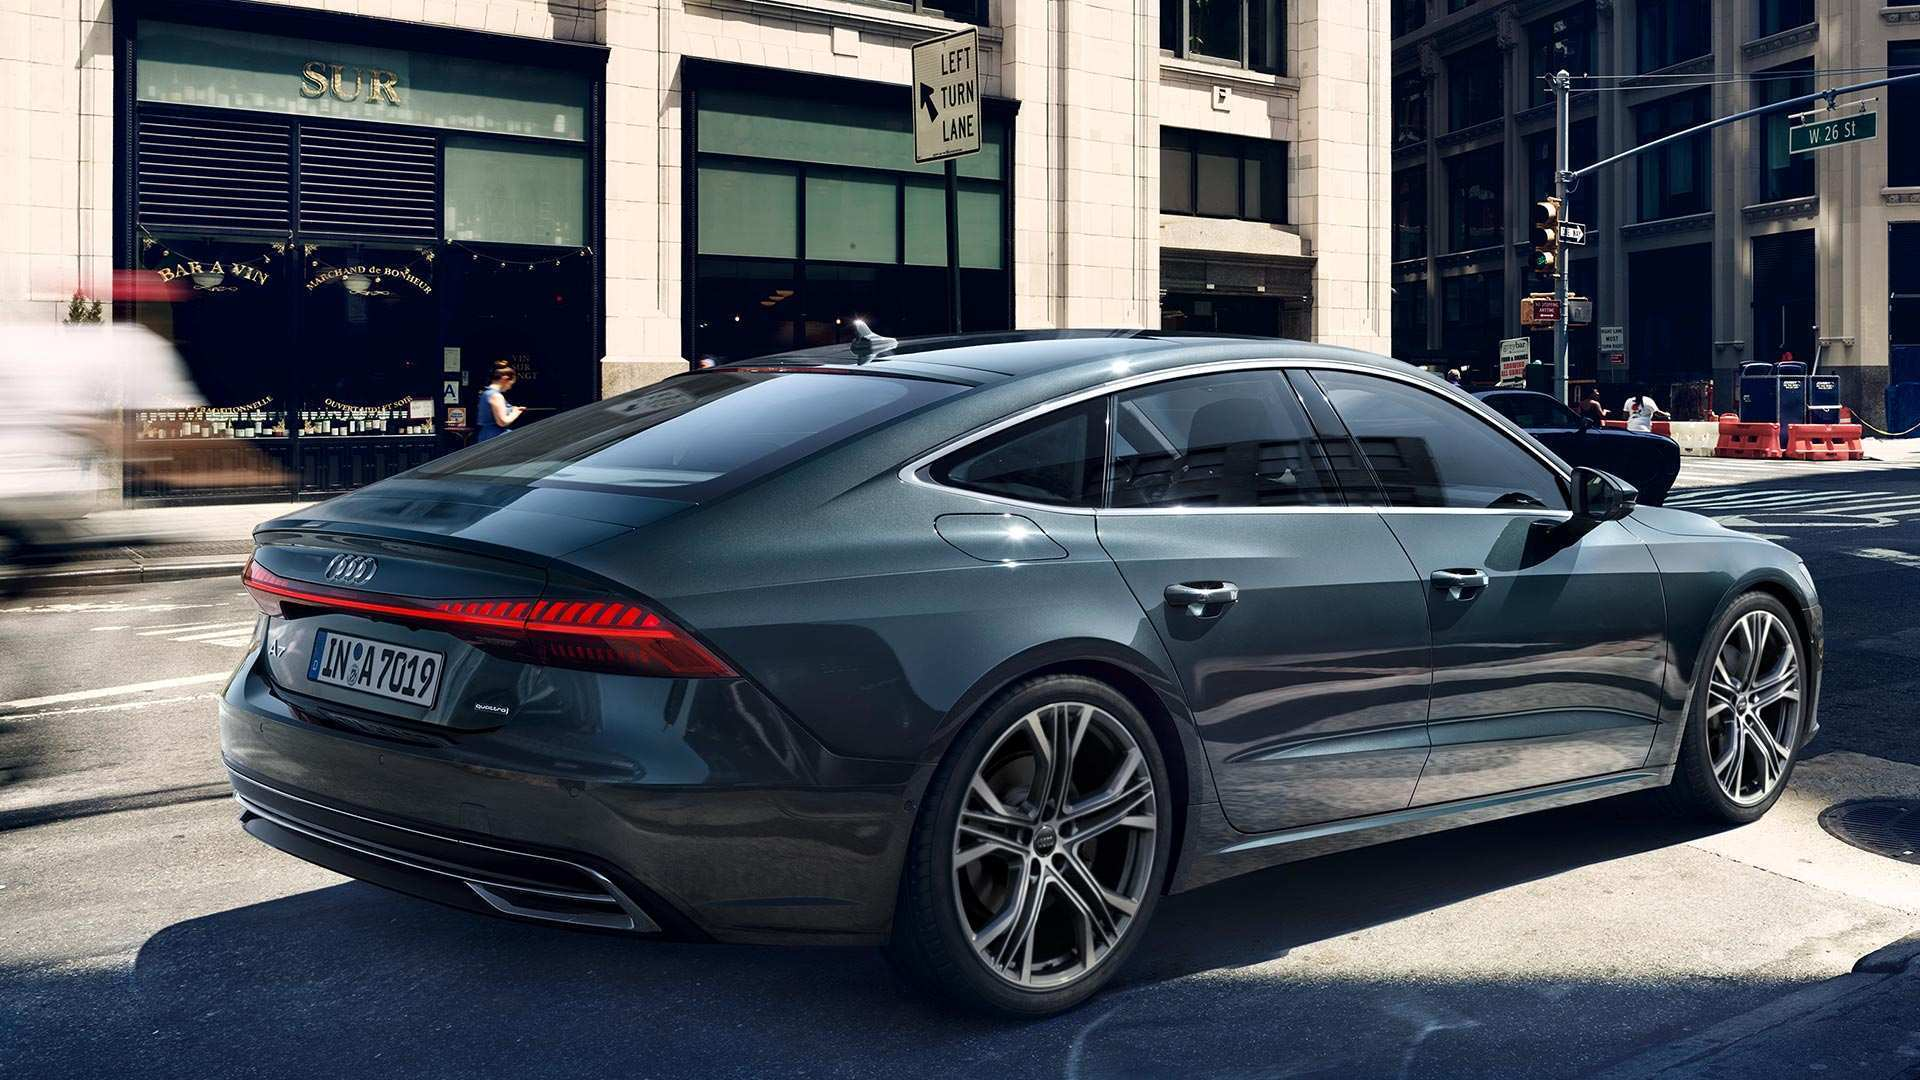 72 All New 2019 All Audi A7 Price Design And Review